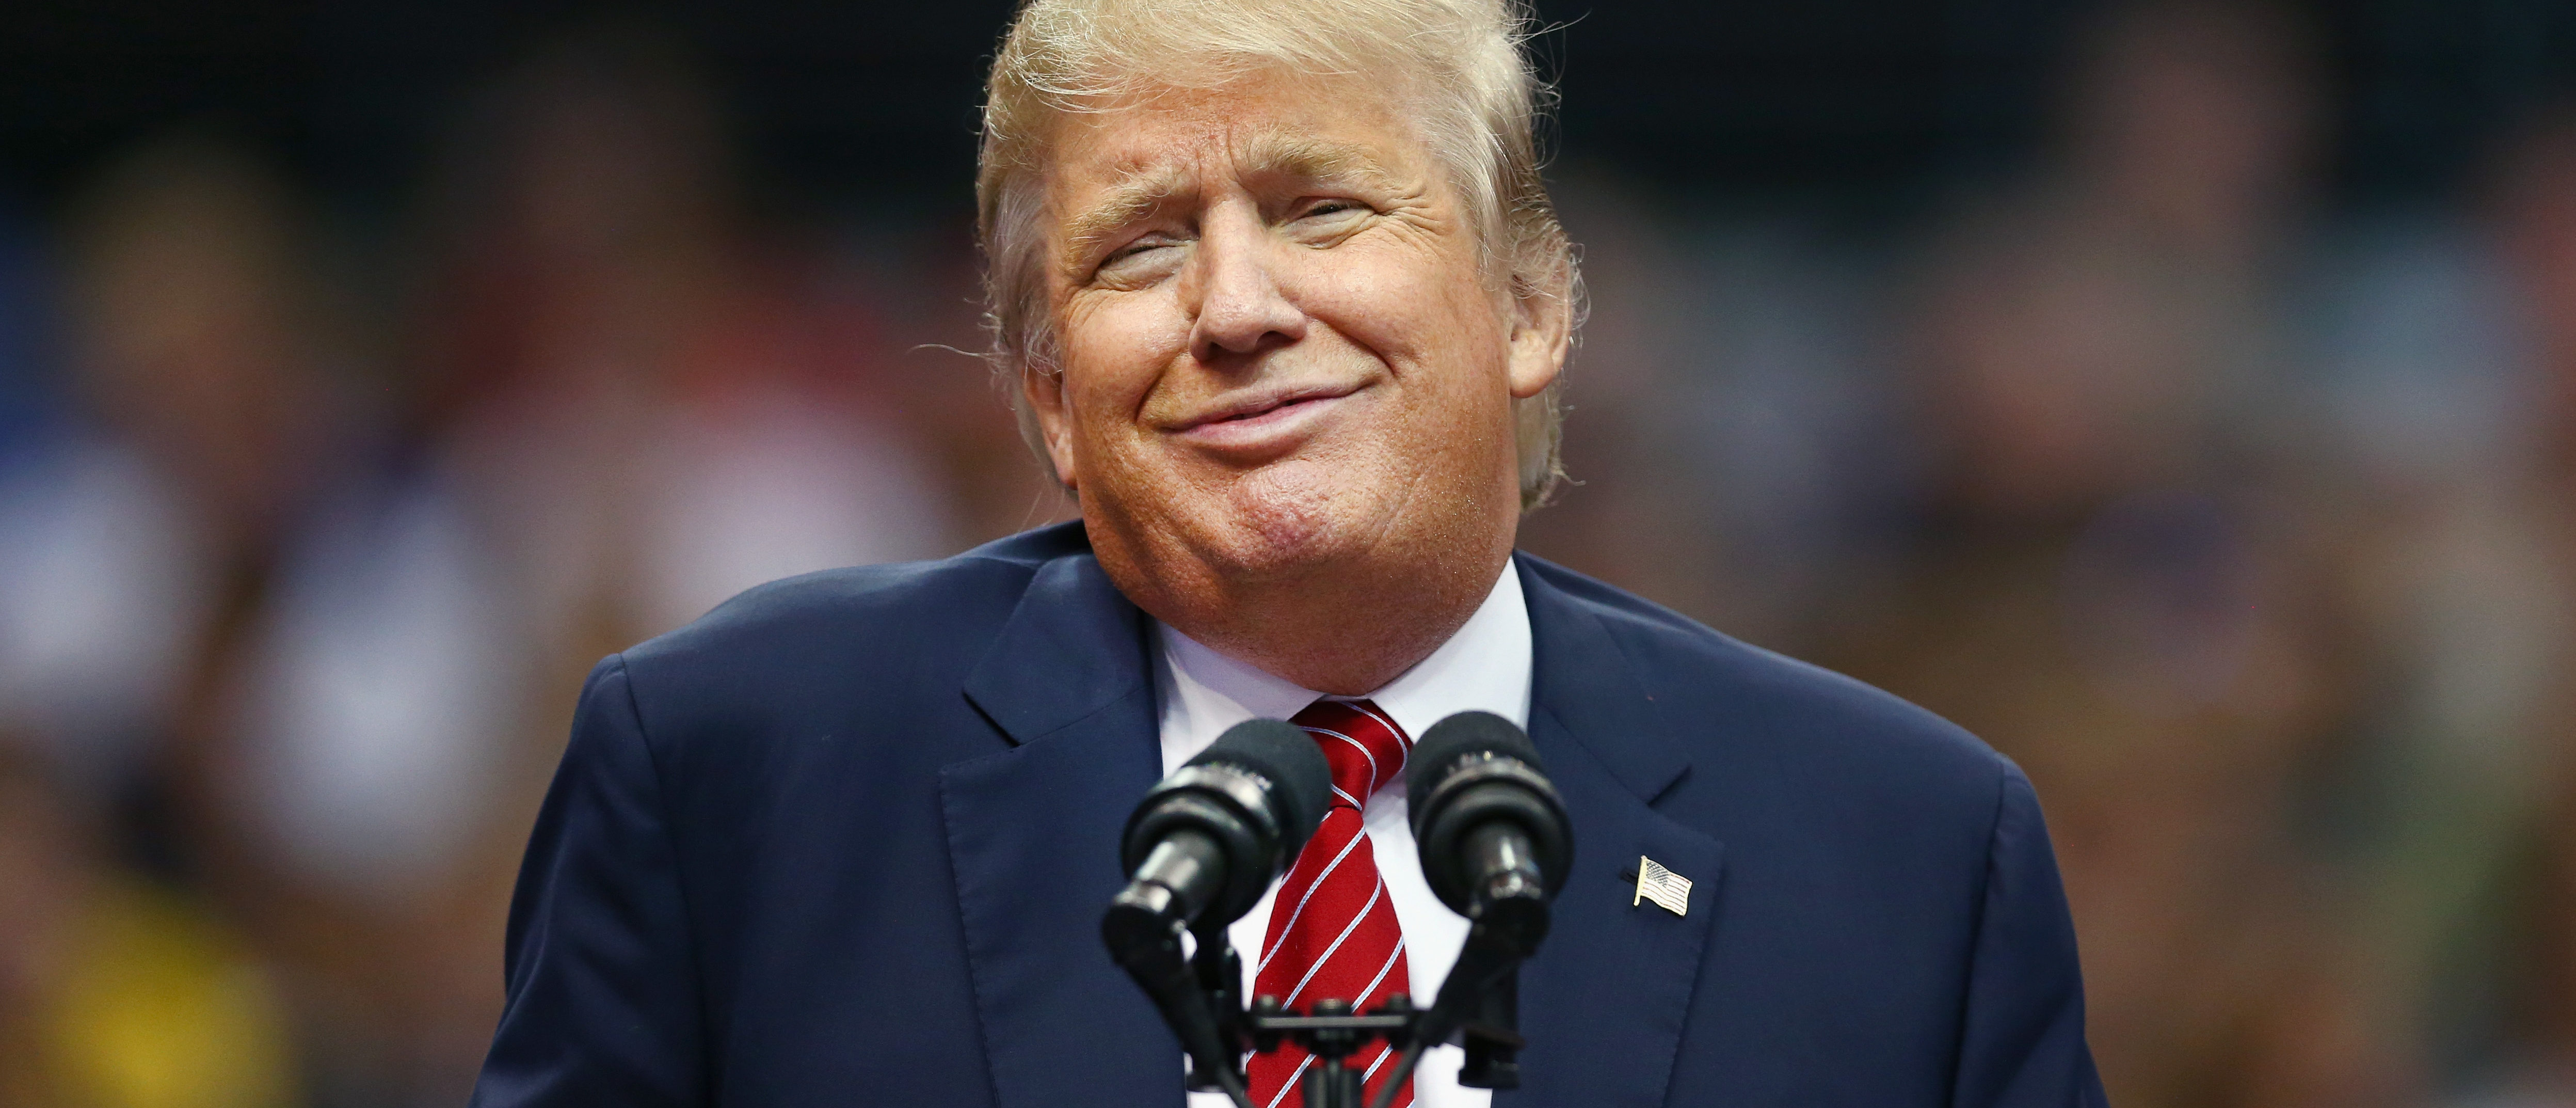 Republican presidential candidate Donald Trump speaks during a campaign rally at the American Airlines Center on Sept. 14, 2015 in Dallas, Texas. (Photo by Tom Pennington/Getty Images)